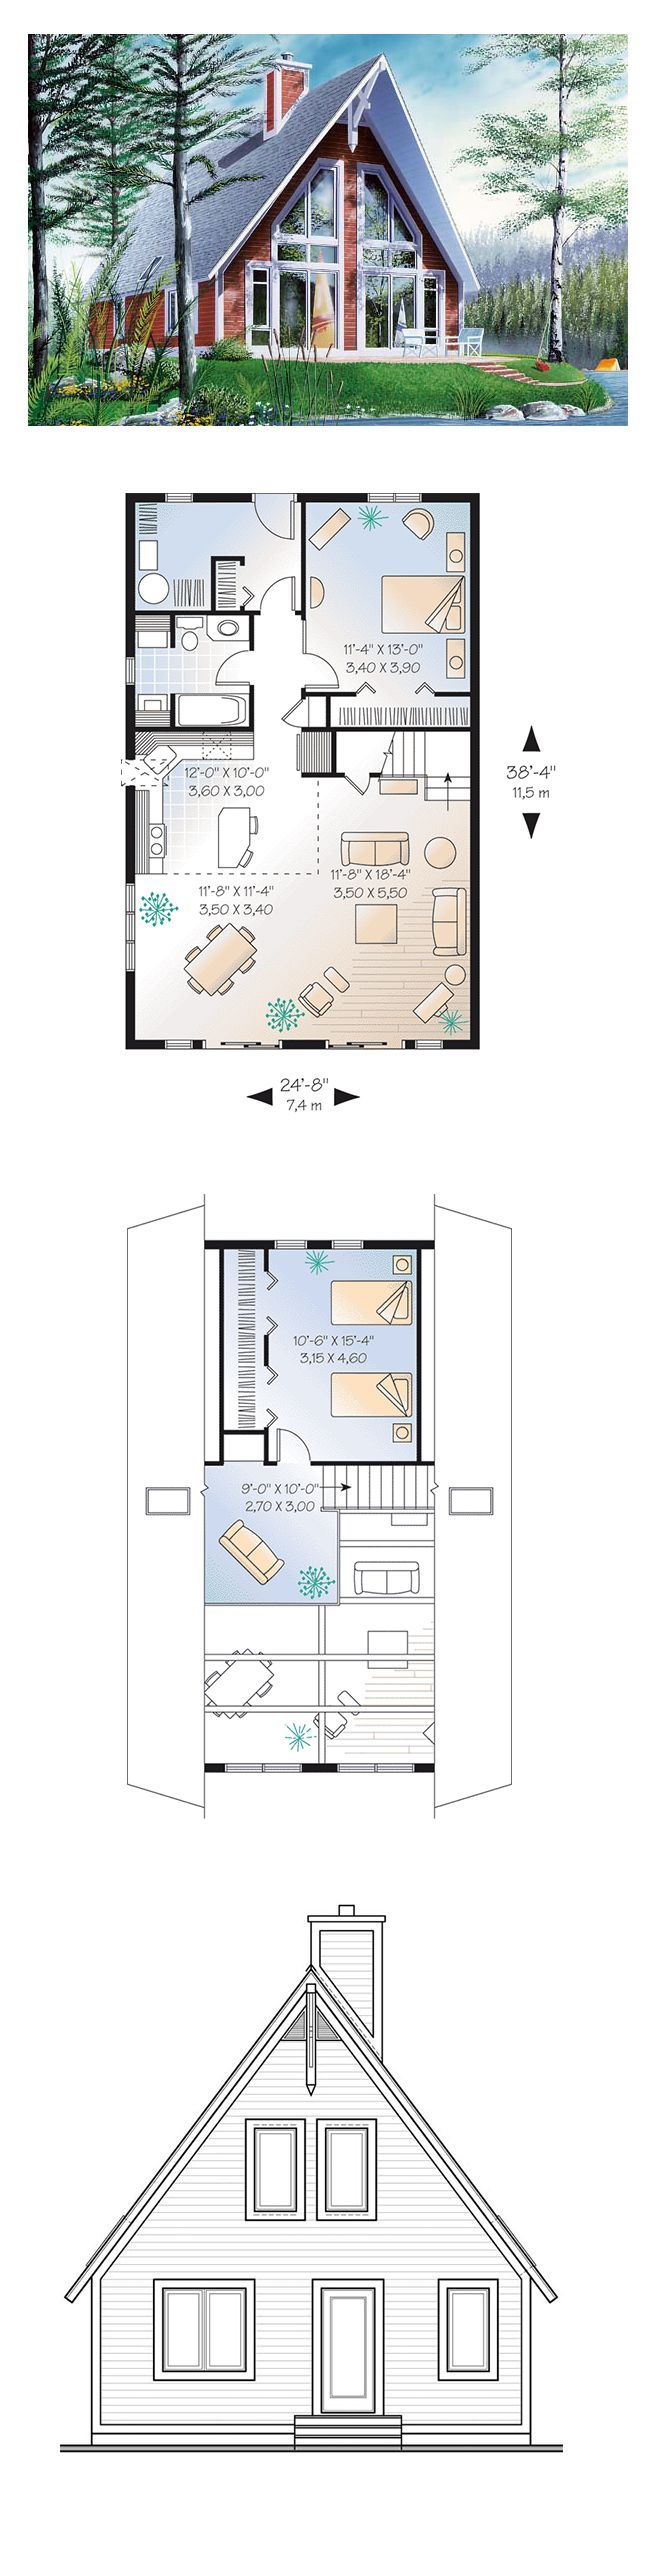 A Frame House Plan 65010 | Total Living Area: 1304 Sq. Ft., 2 Bedrooms And  1 Bathroom. Ceilings With Timber Details Greet You In This Two Bedroom  Chalet ...